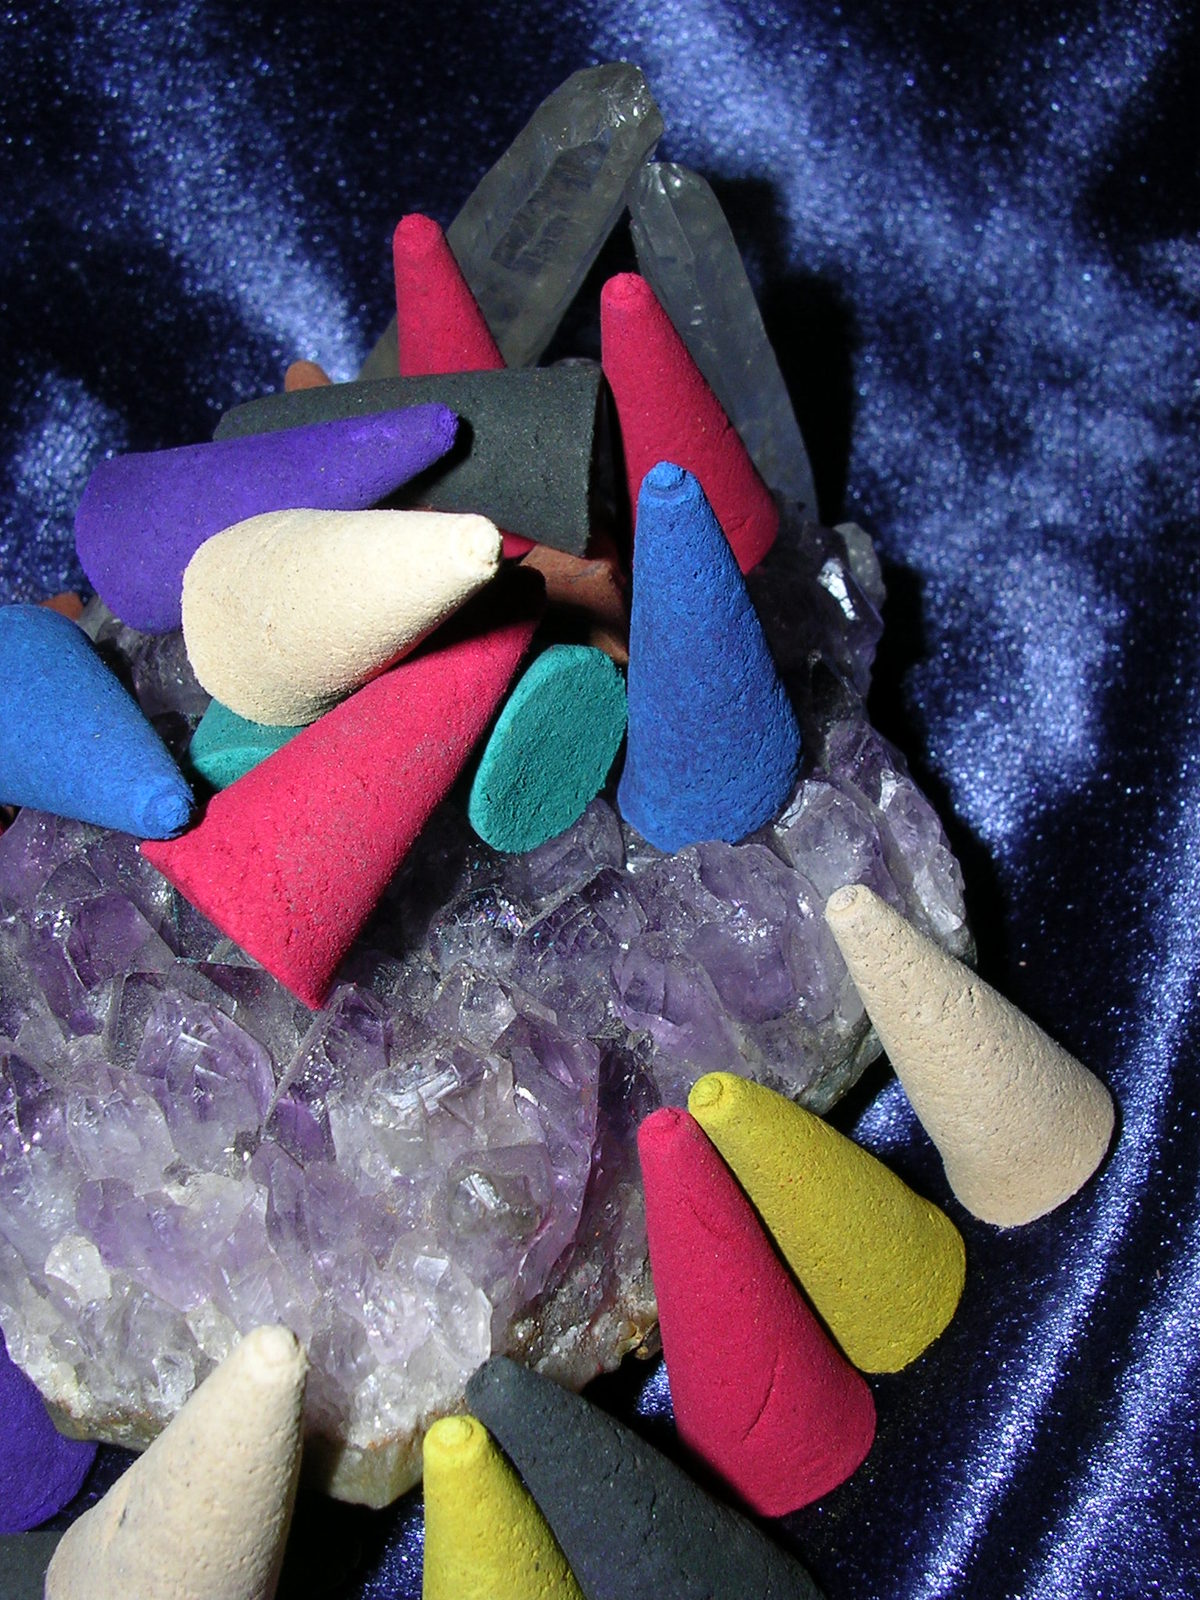 12 Black Opium Protection Hex Breaking Incense! Metaphysical Wicca haunted NW580